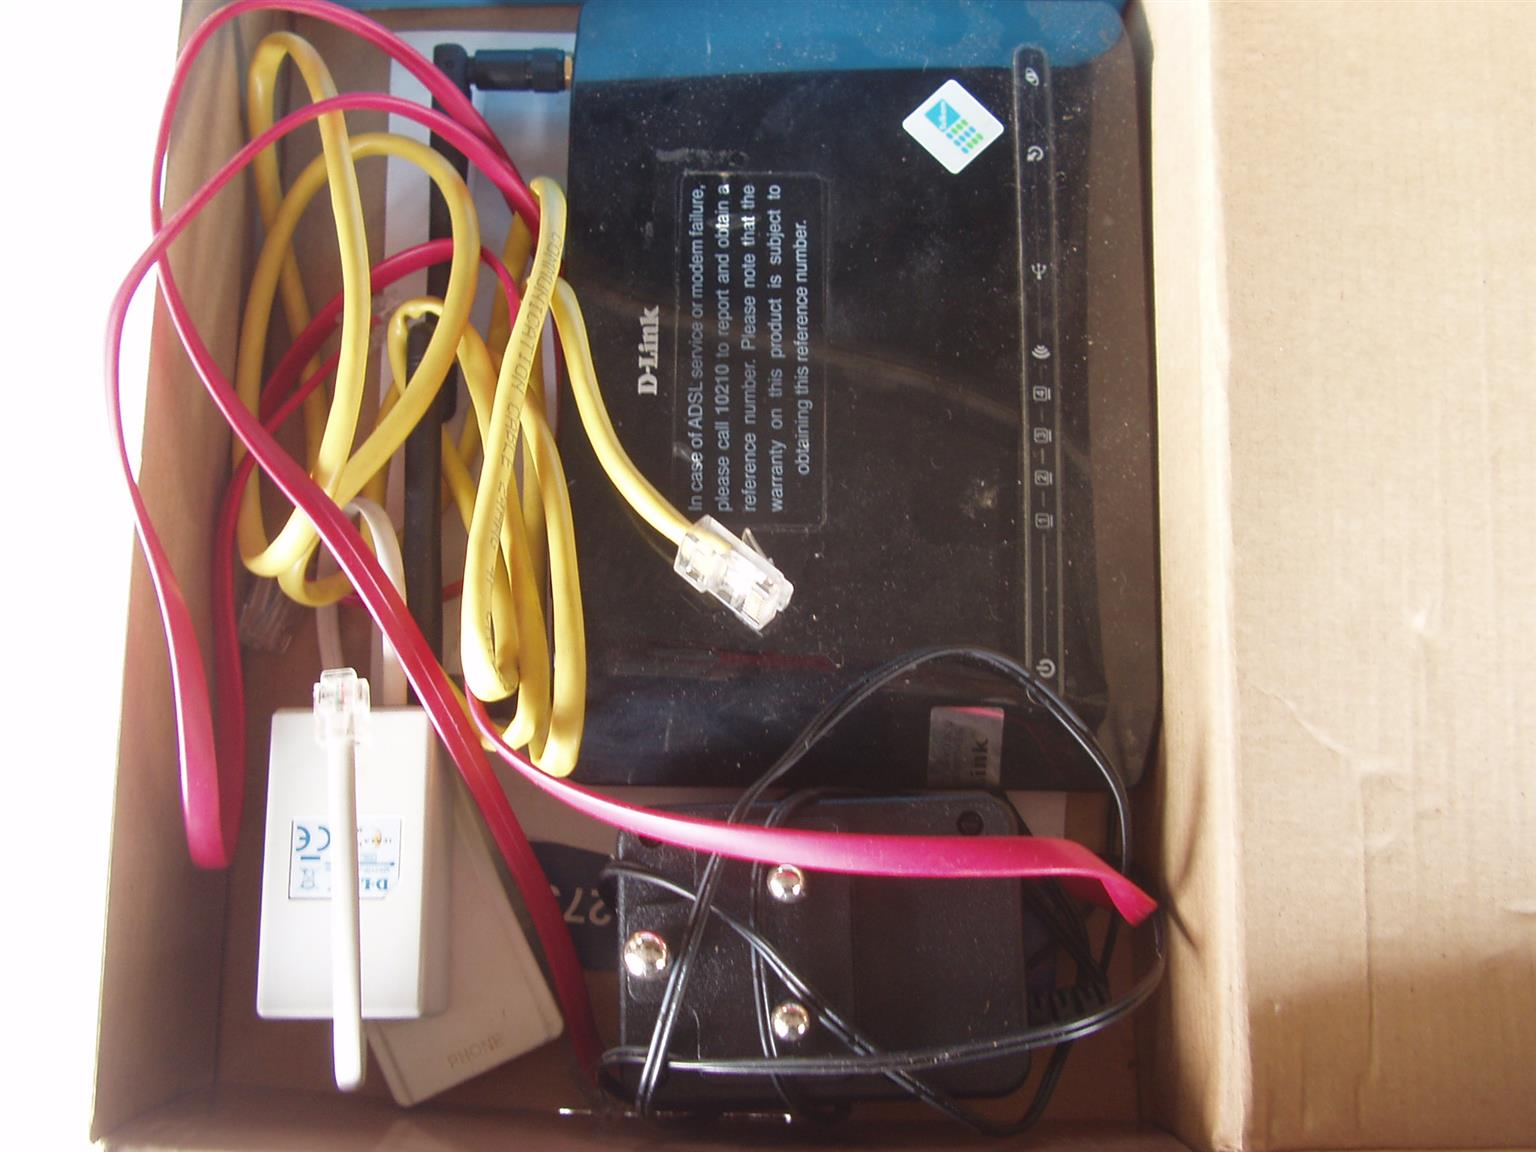 Telkom D Link ADSL2+ - Wireless G Router - with cables and driver disk